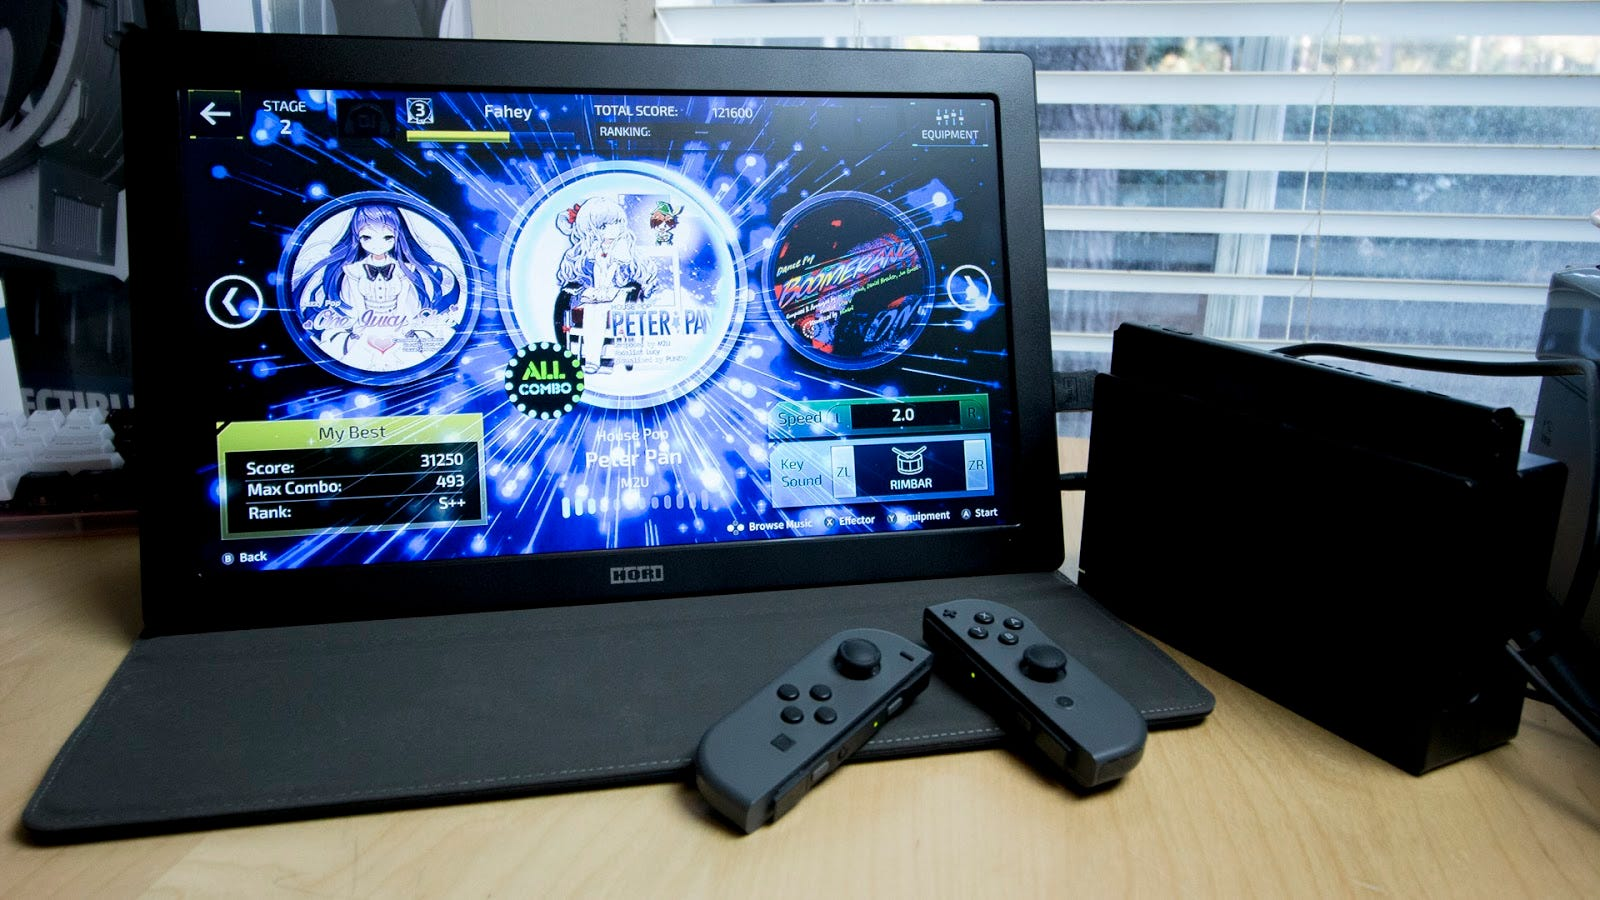 hori 39 s portable gaming monitor isn 39 t pretty but it works. Black Bedroom Furniture Sets. Home Design Ideas